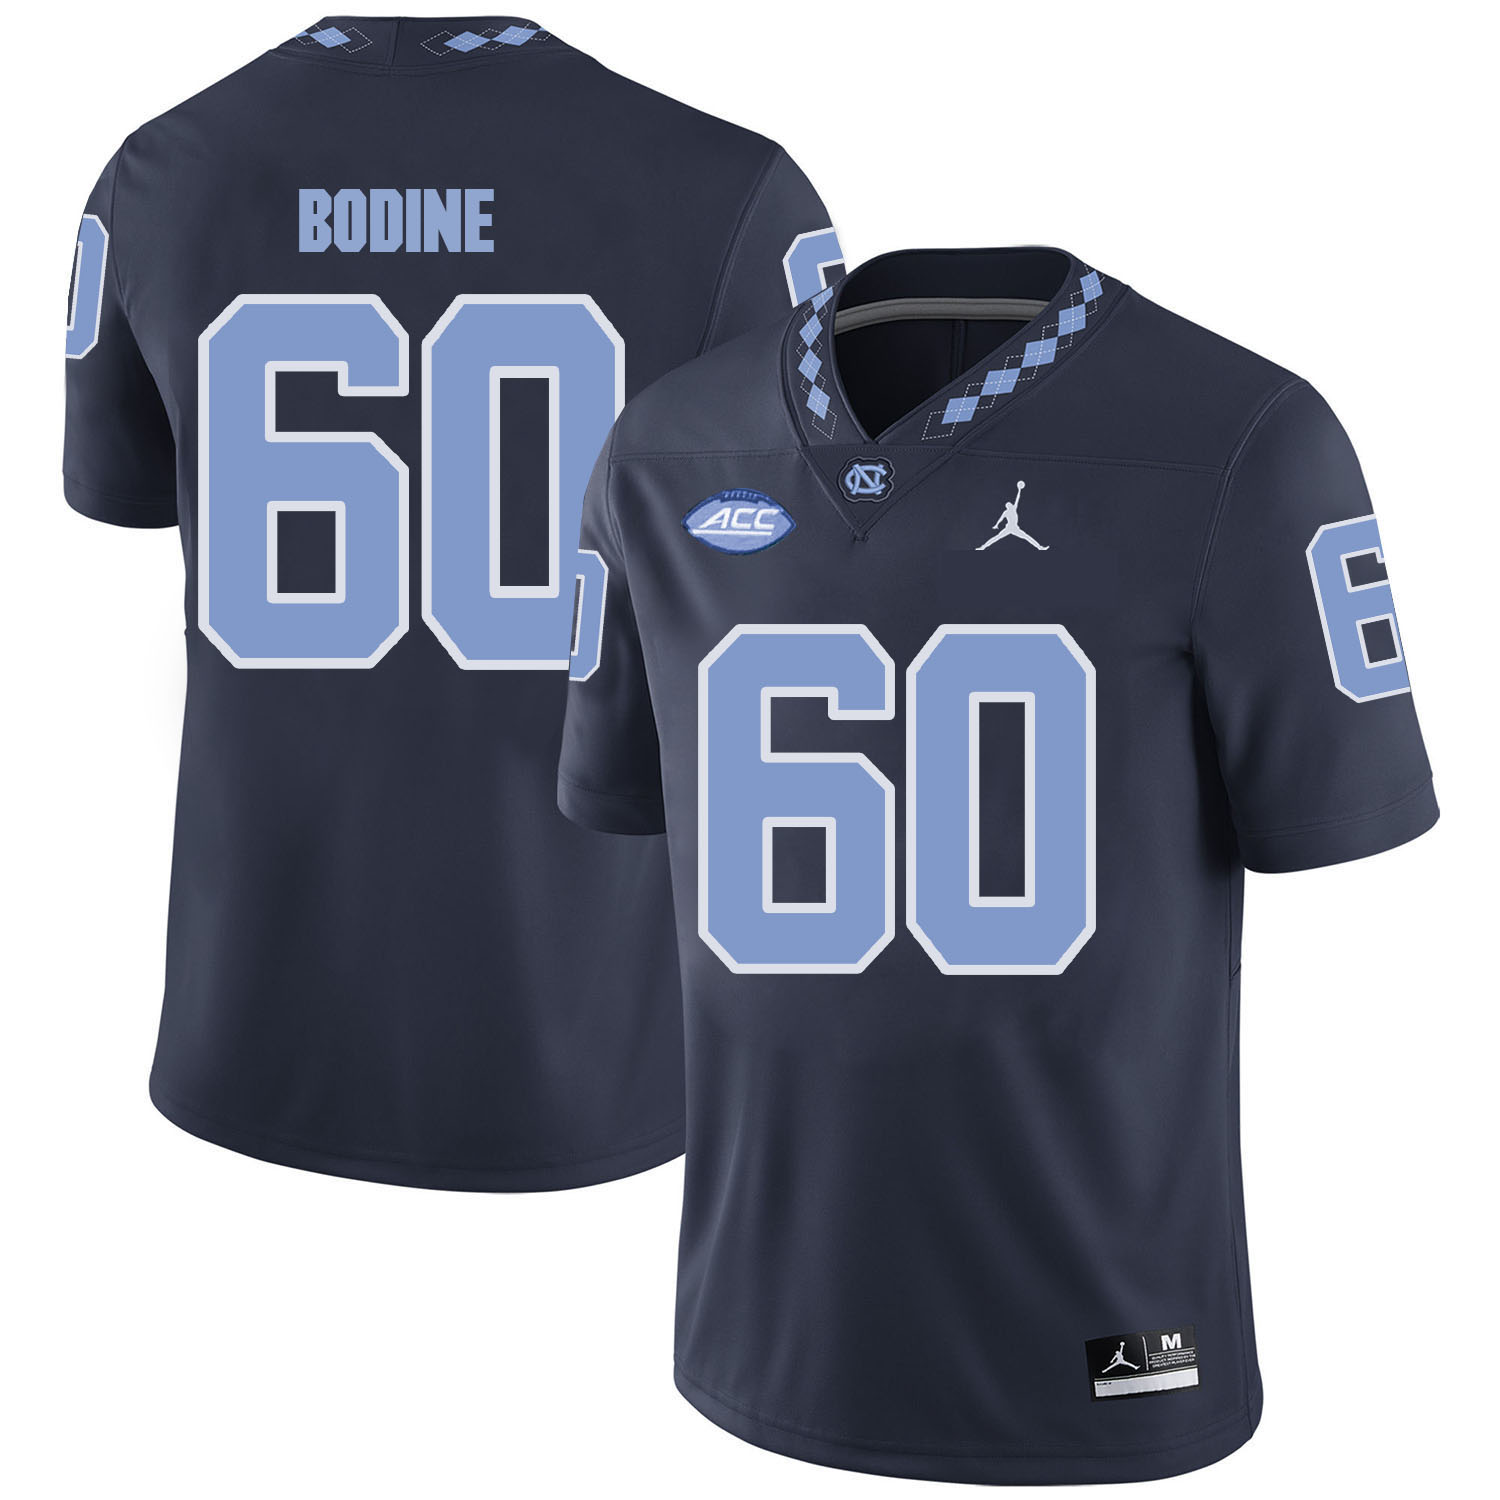 North Carolina Tar Heels 60 Russell Bodine Black College Football Jersey